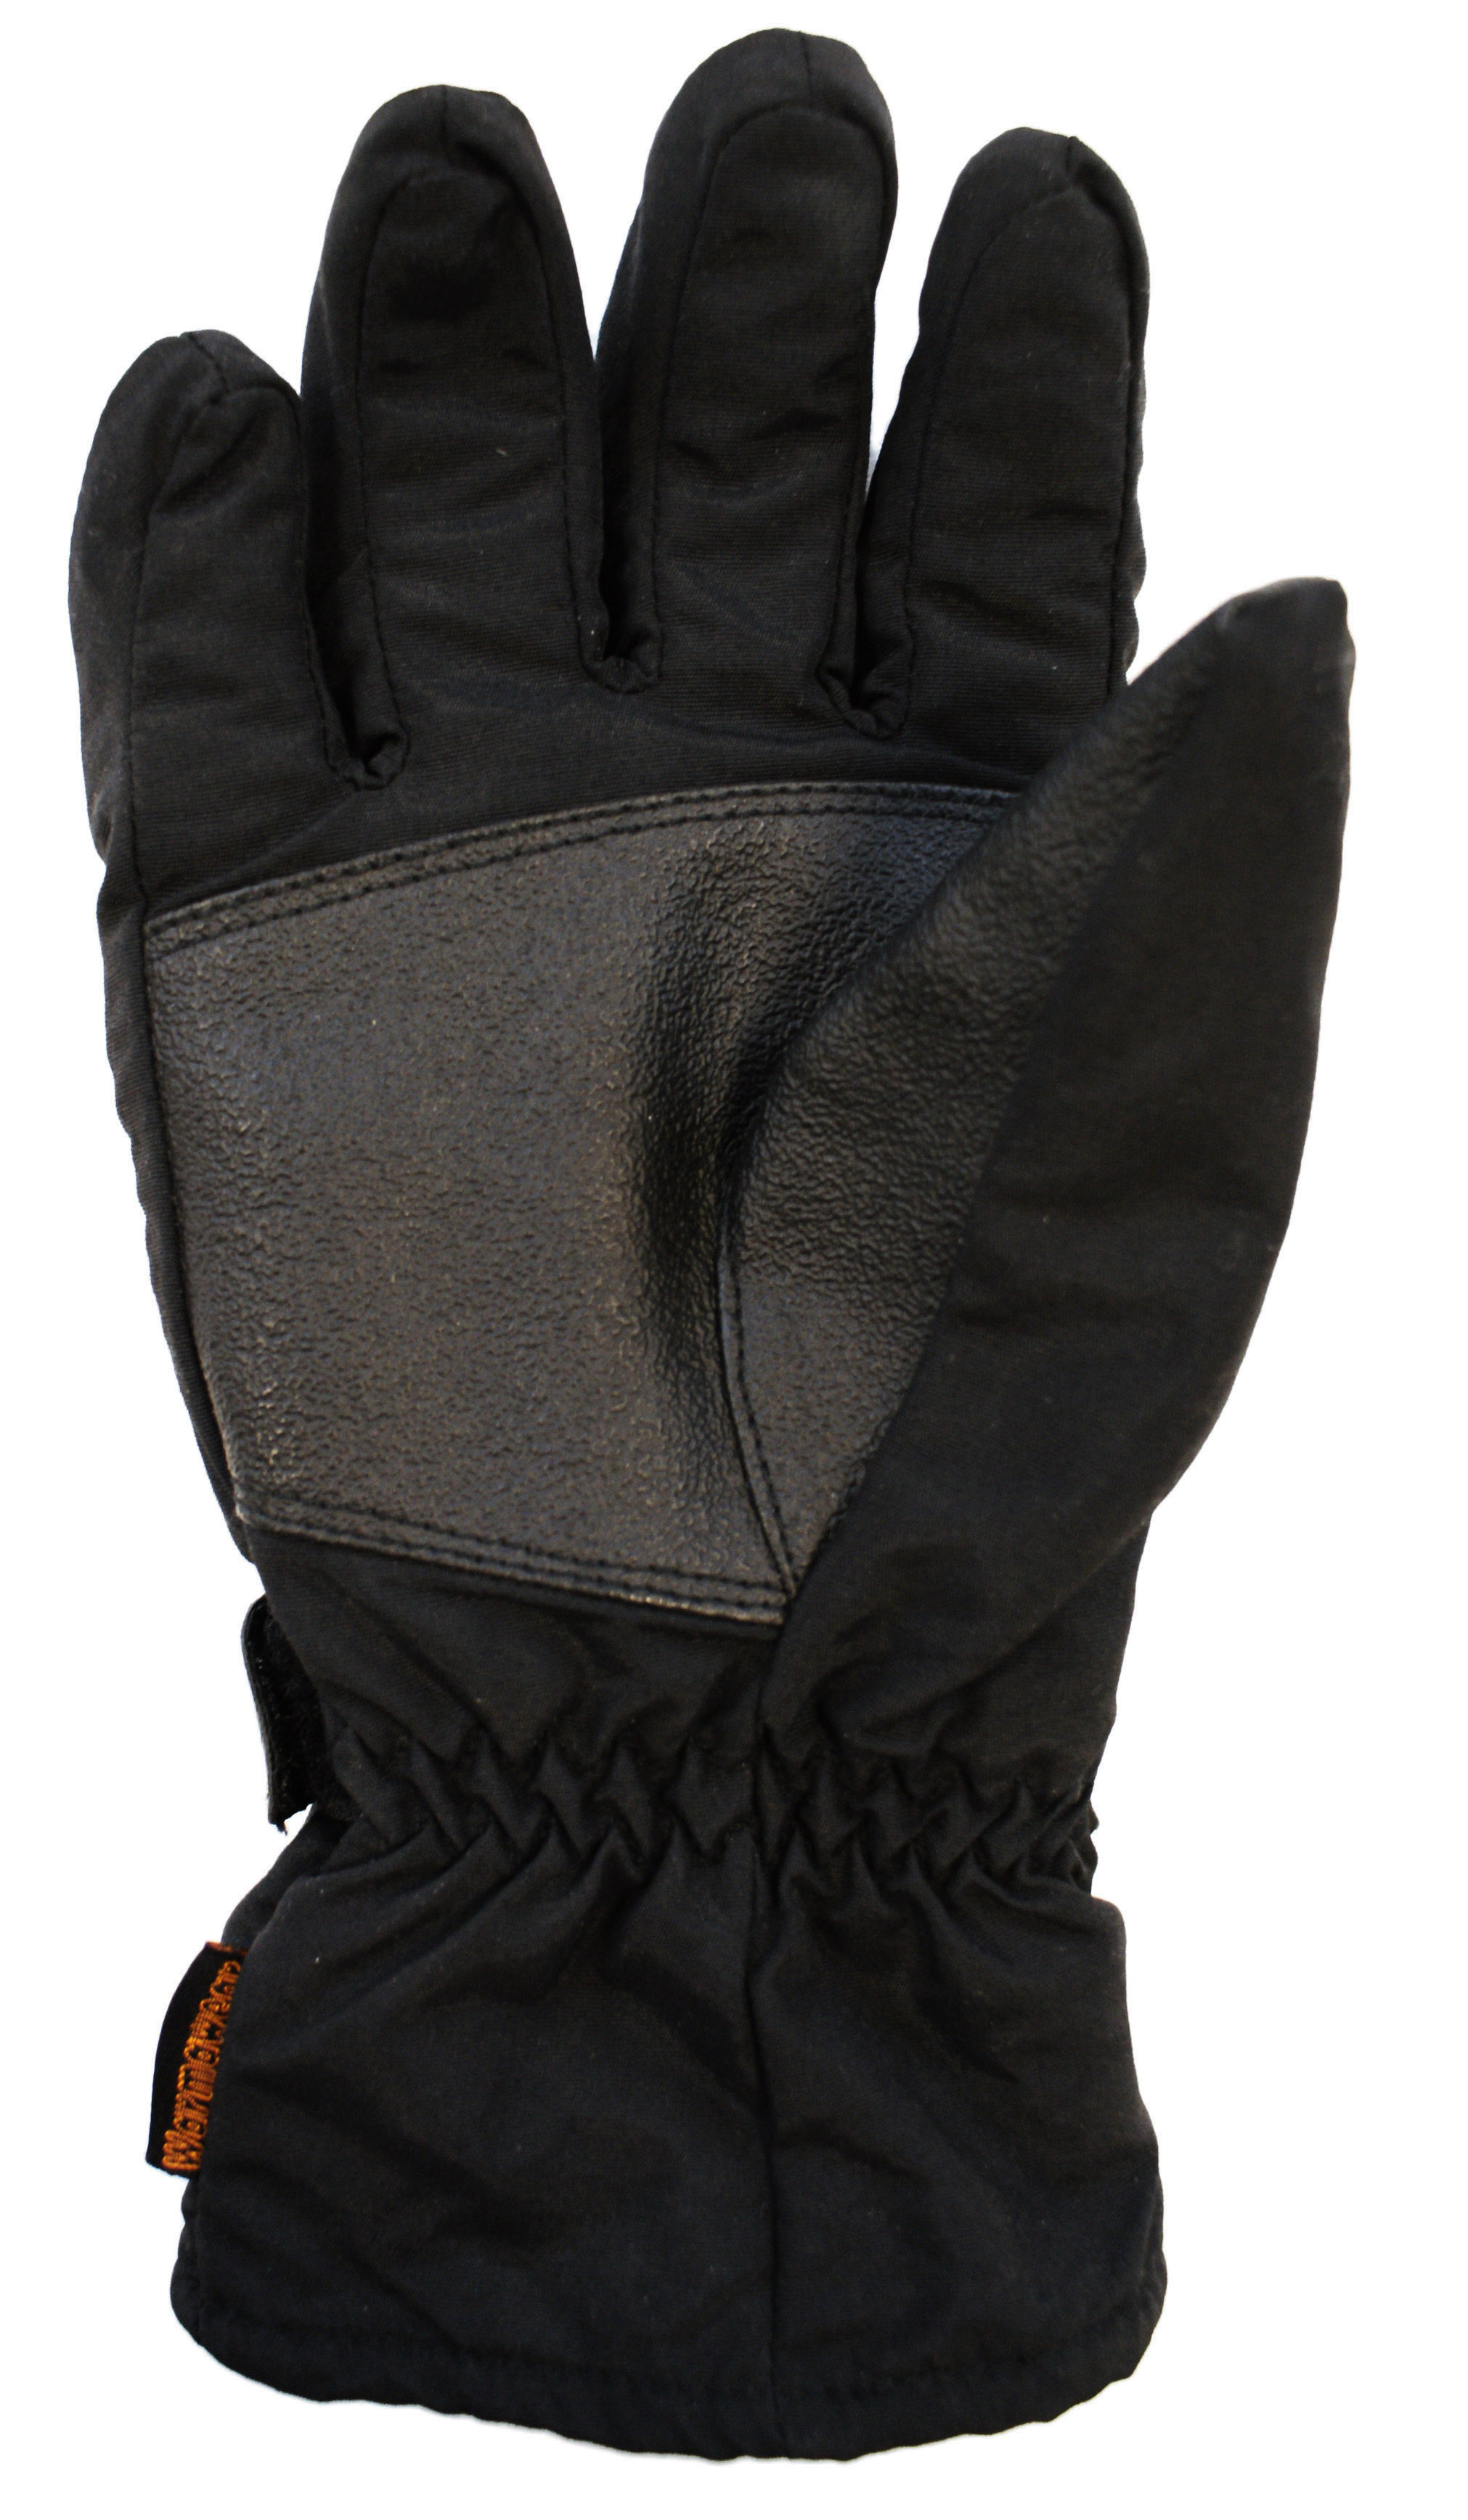 gants chauffants pour l 39 hiver des gants high tech pour avoir chaud au ski super insolite. Black Bedroom Furniture Sets. Home Design Ideas